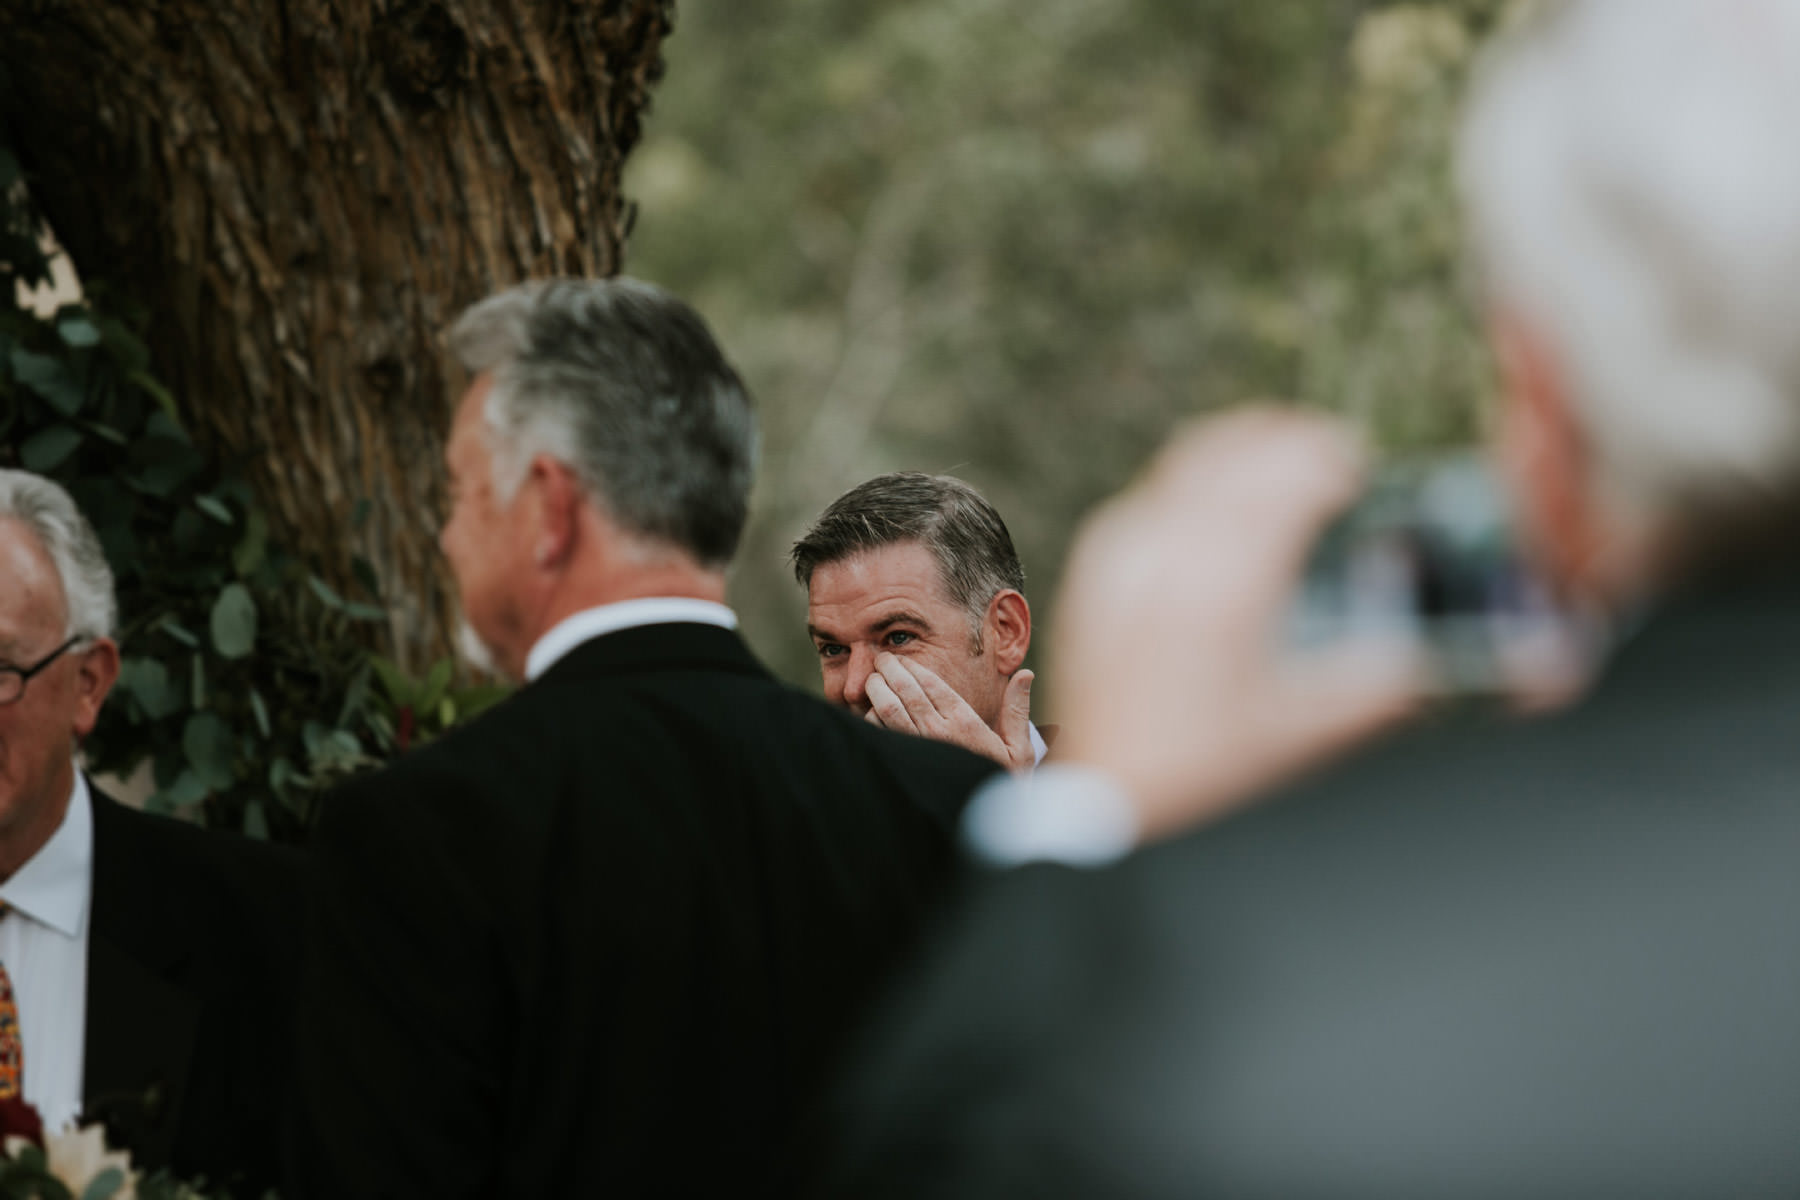 Groom crying during ceremony at Leo Carrillo Ranch wedding